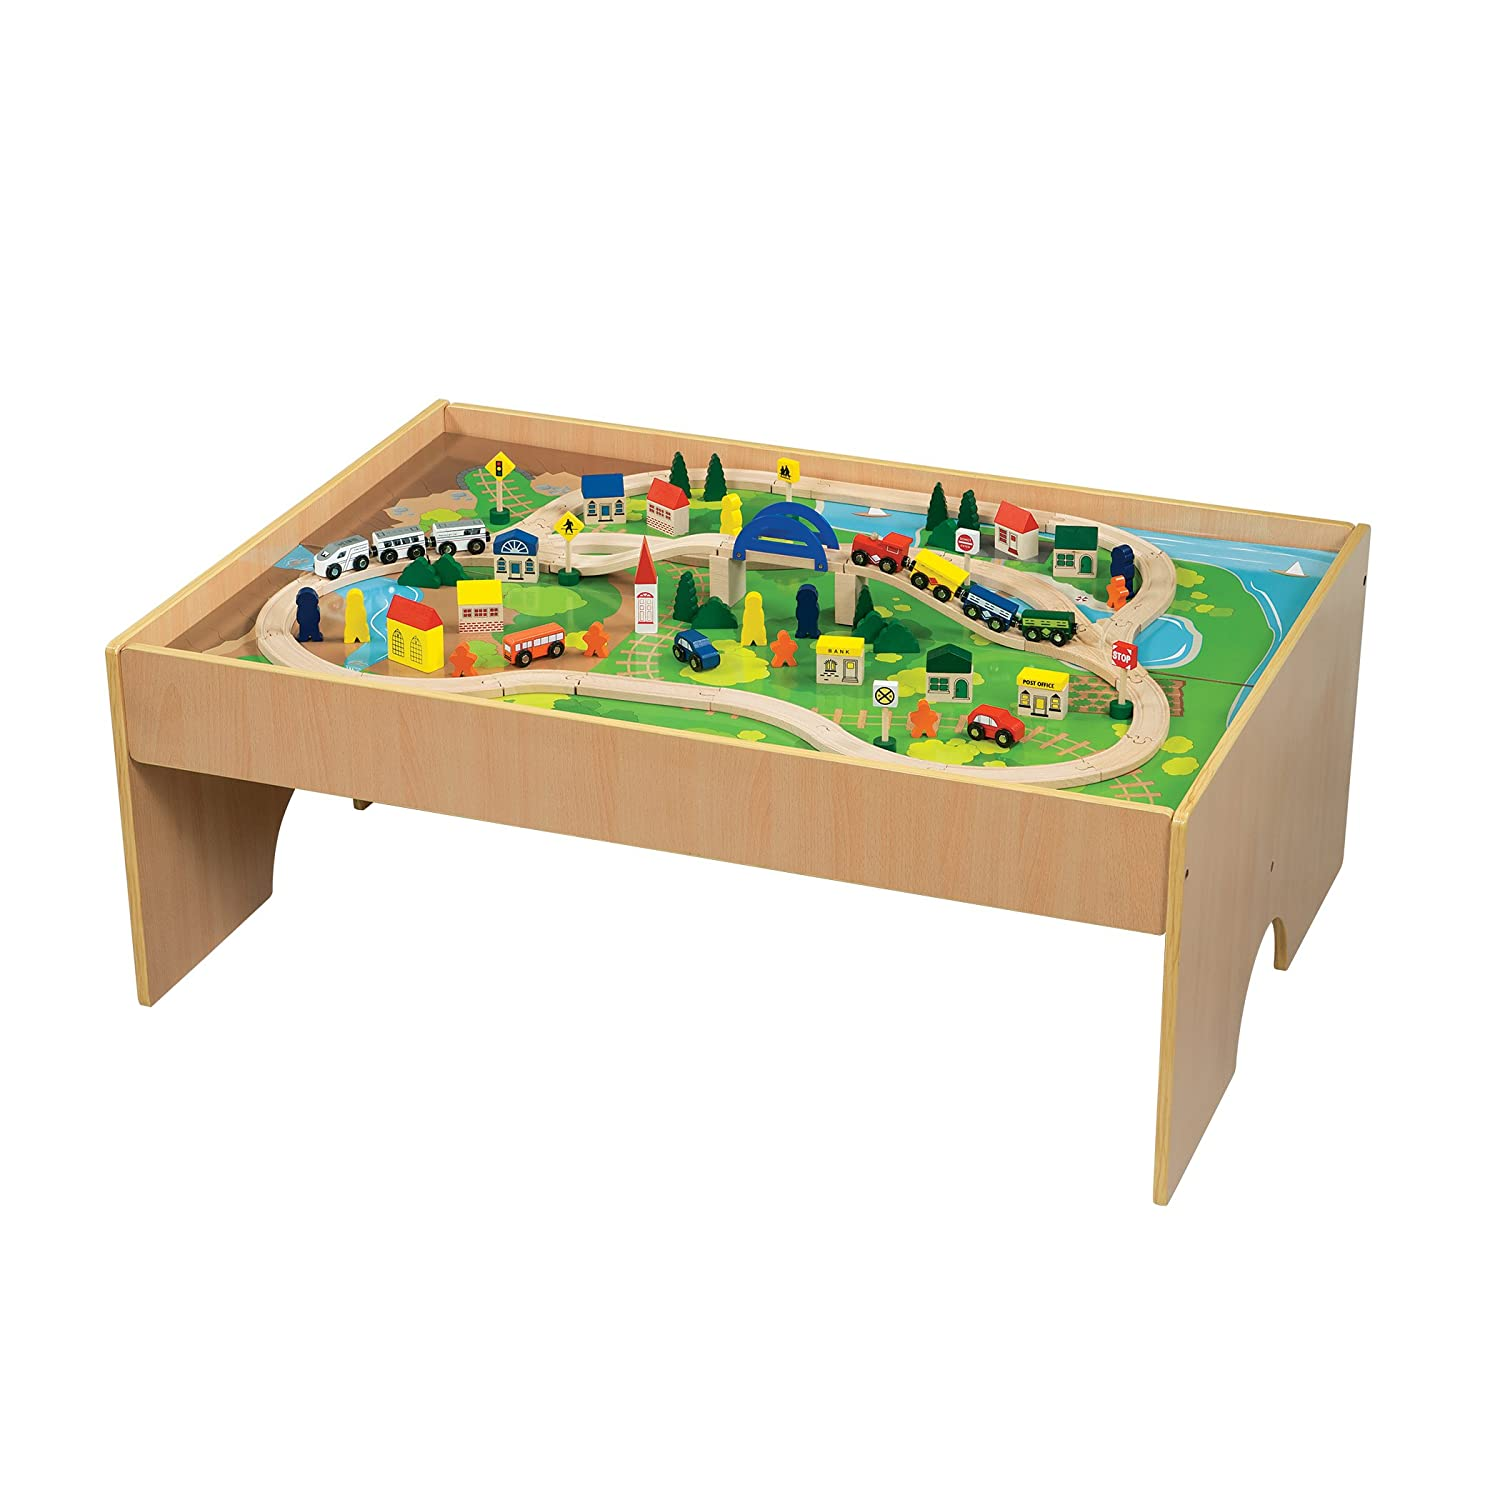 sc 1 st  Amazon.com & Amazon.com: Battat All Aboard Wooden Train Table: Toys u0026 Games